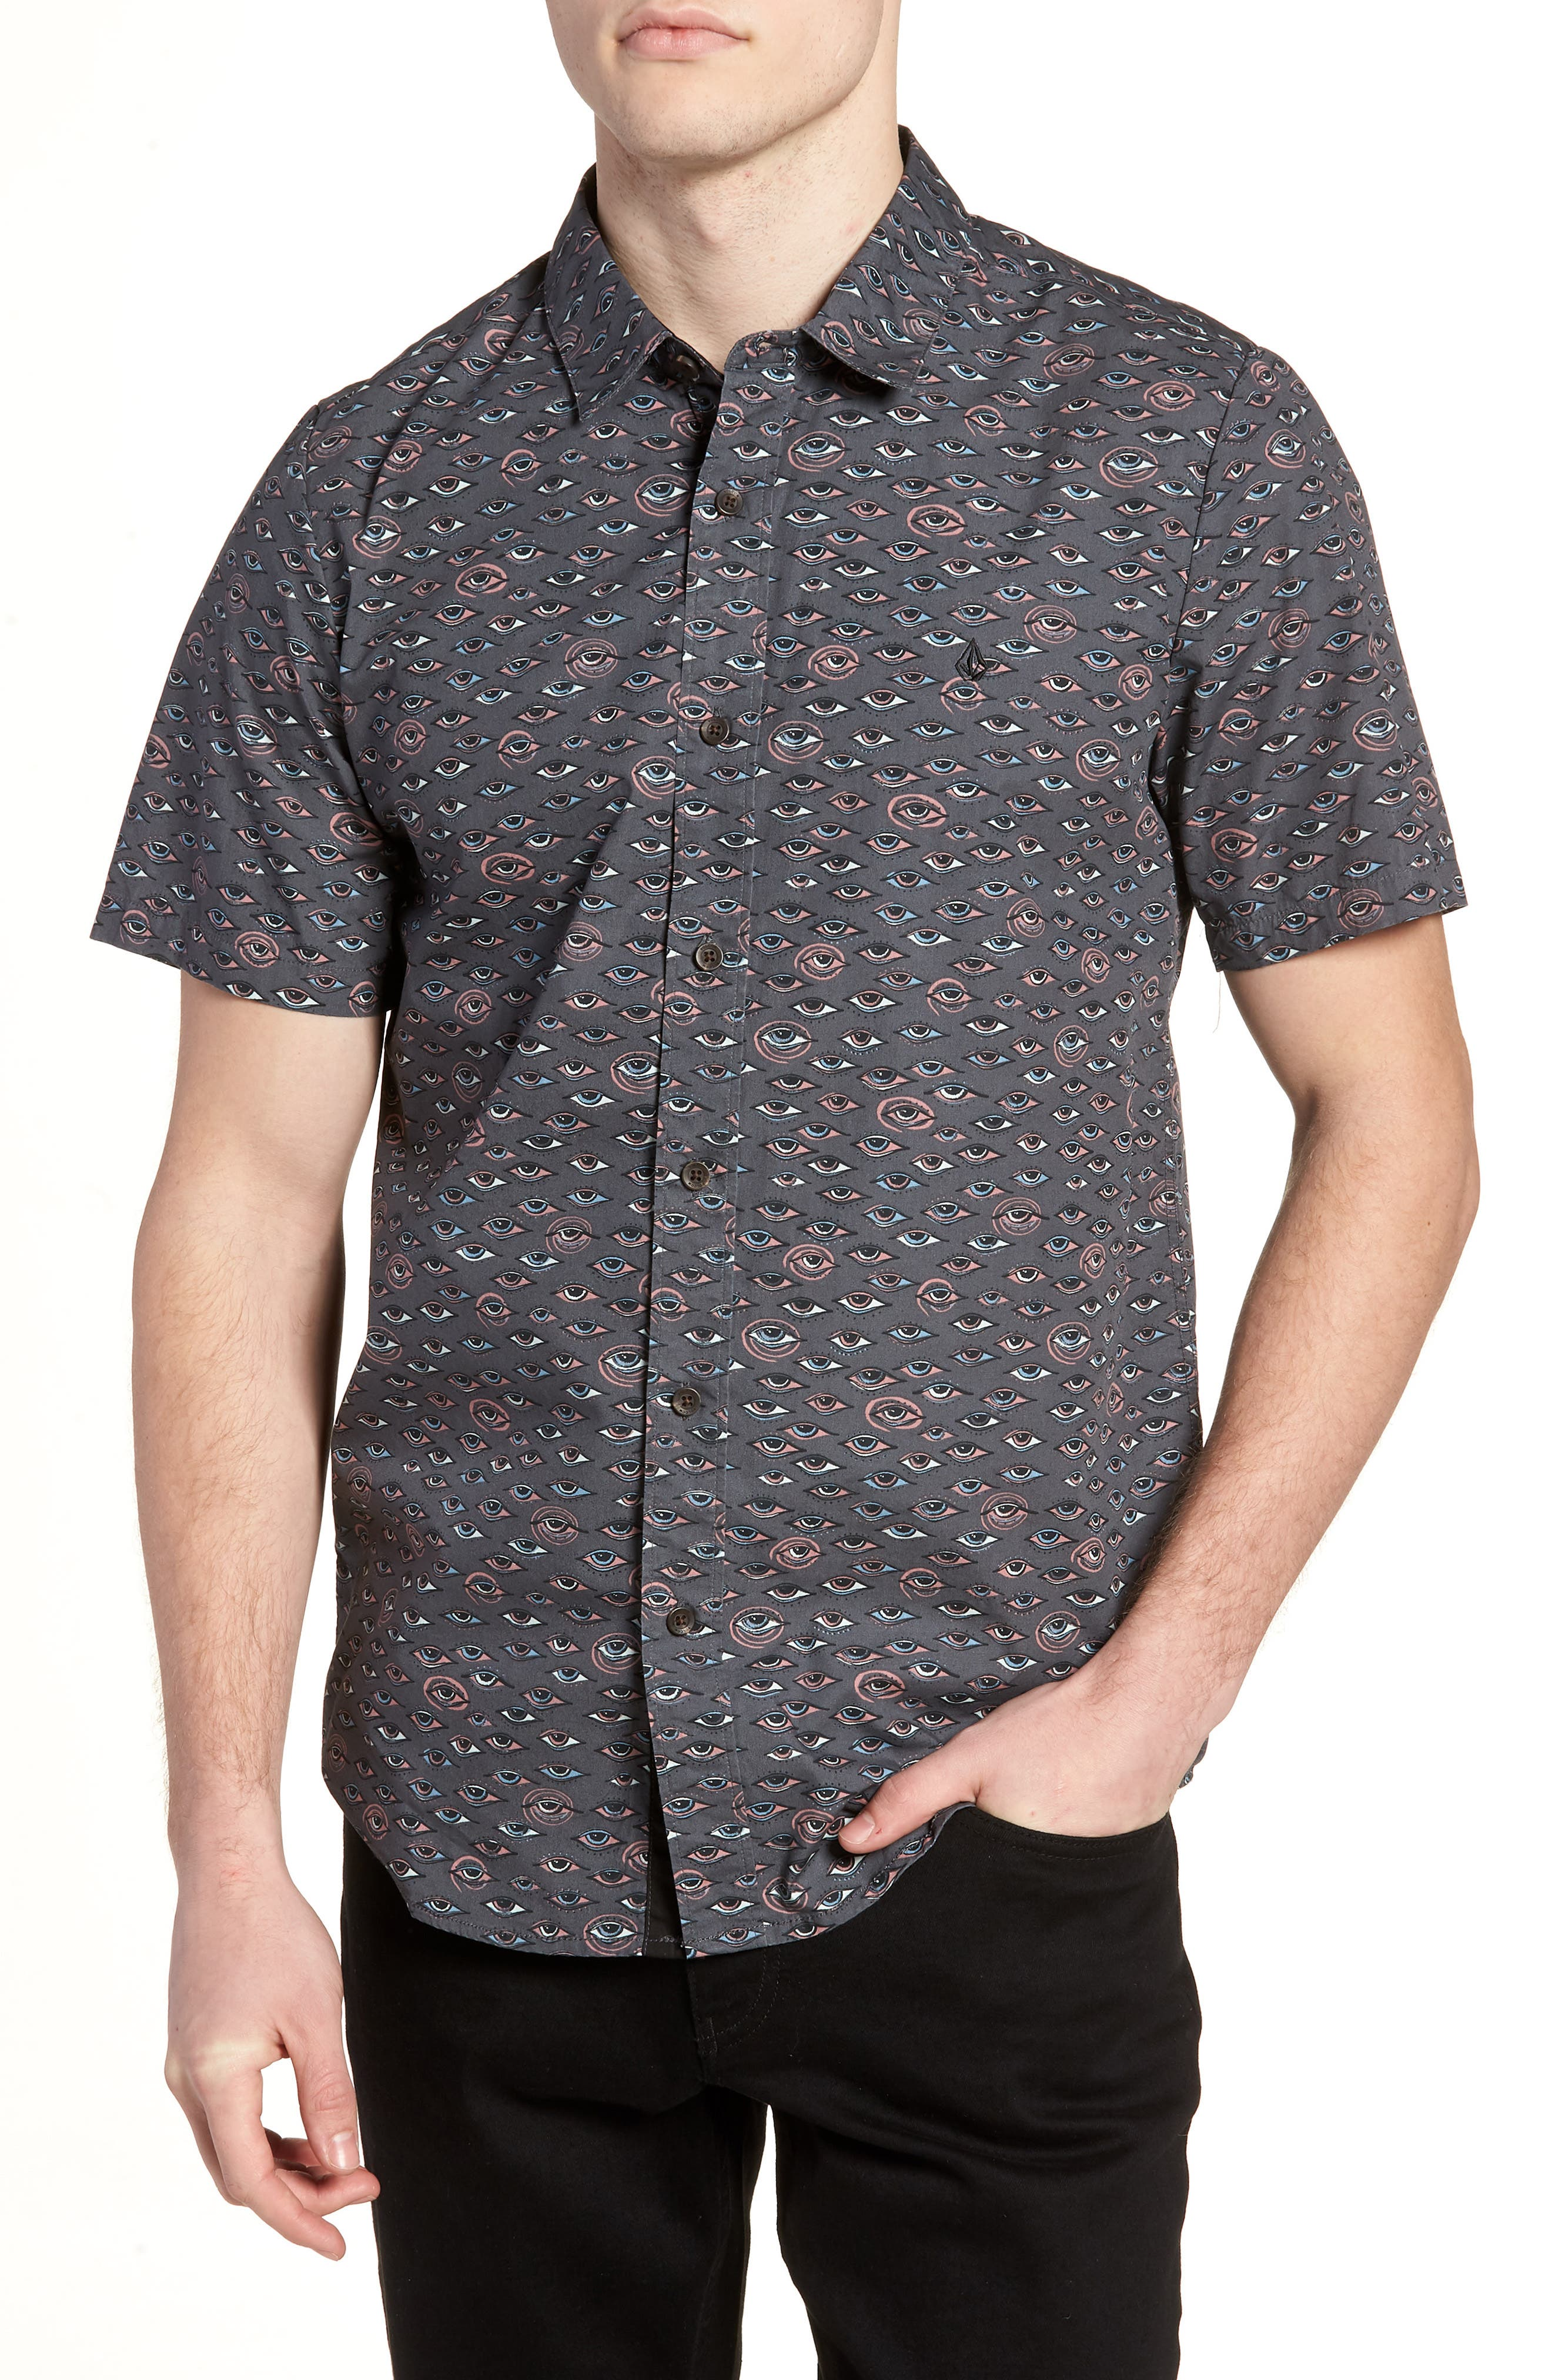 Burch Woven Shirt,                             Main thumbnail 1, color,                             020